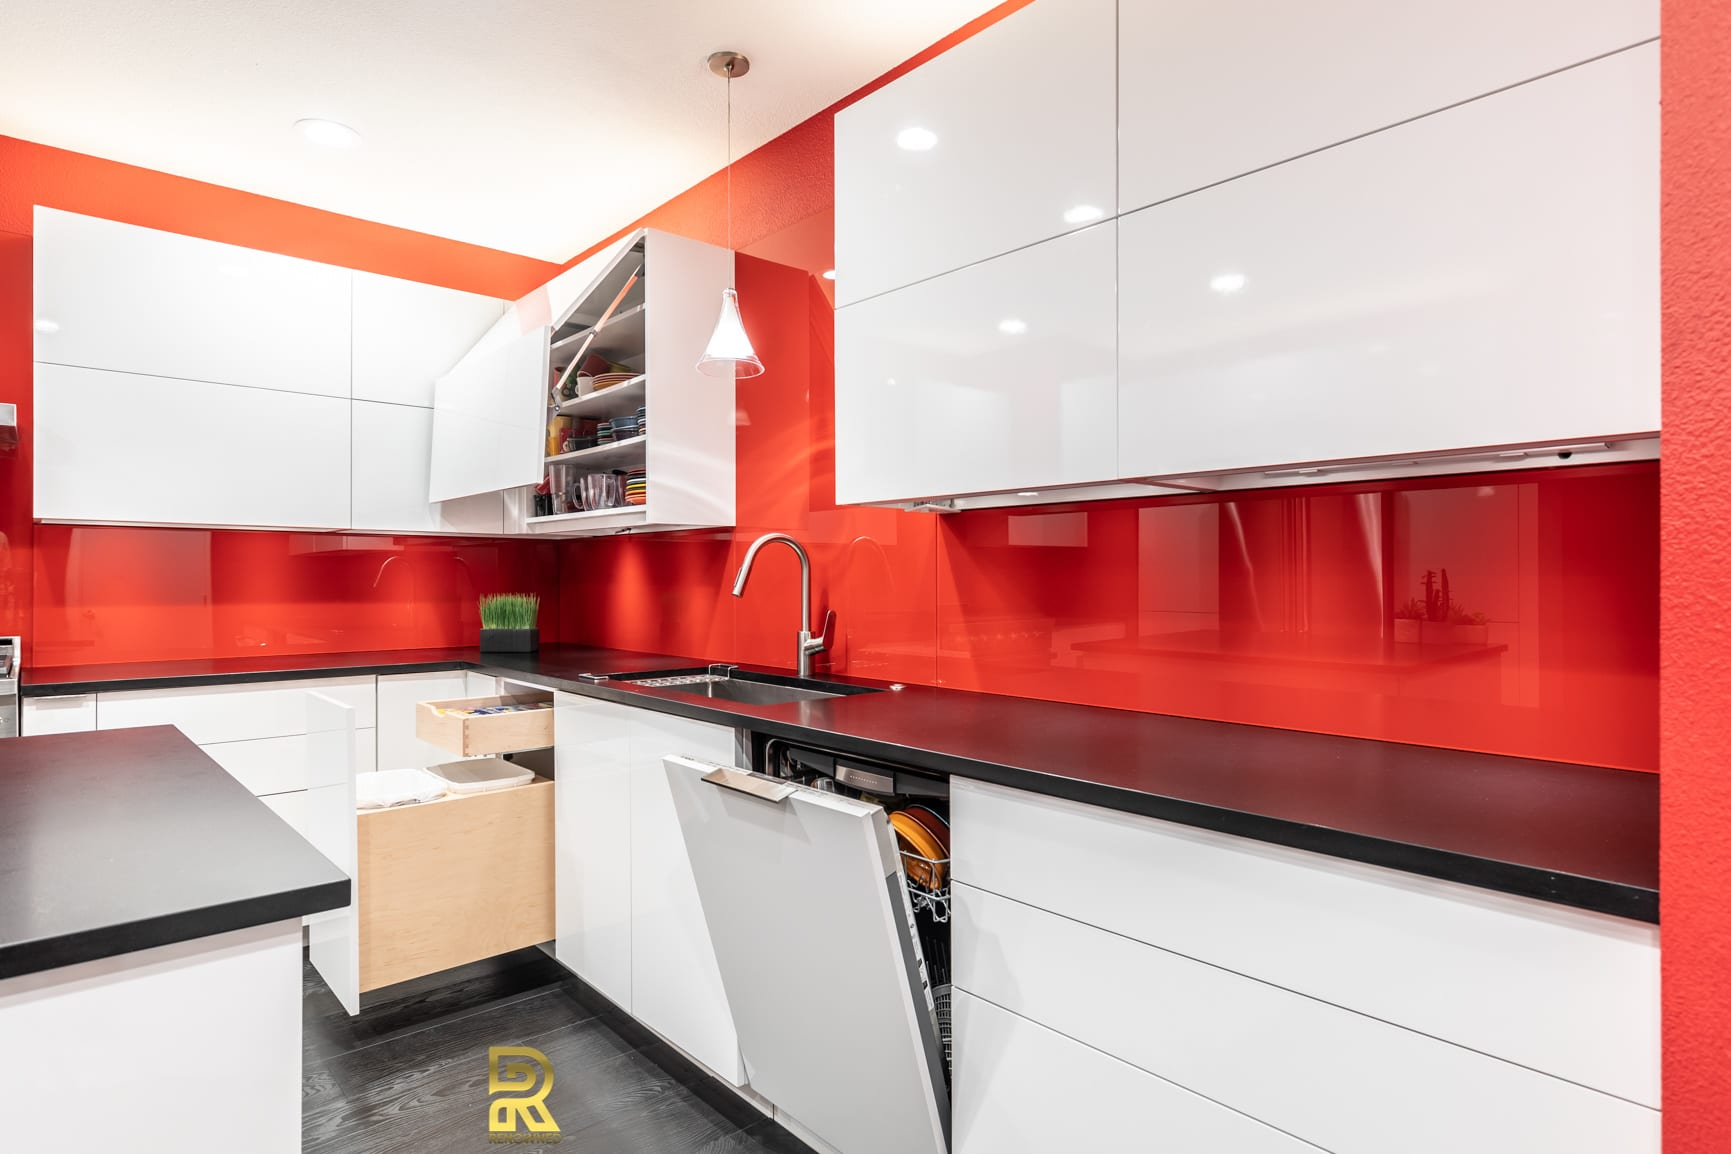 Red Hot Dallas High Rise Condo Kitchen After Remodeling by Renowned Renovation